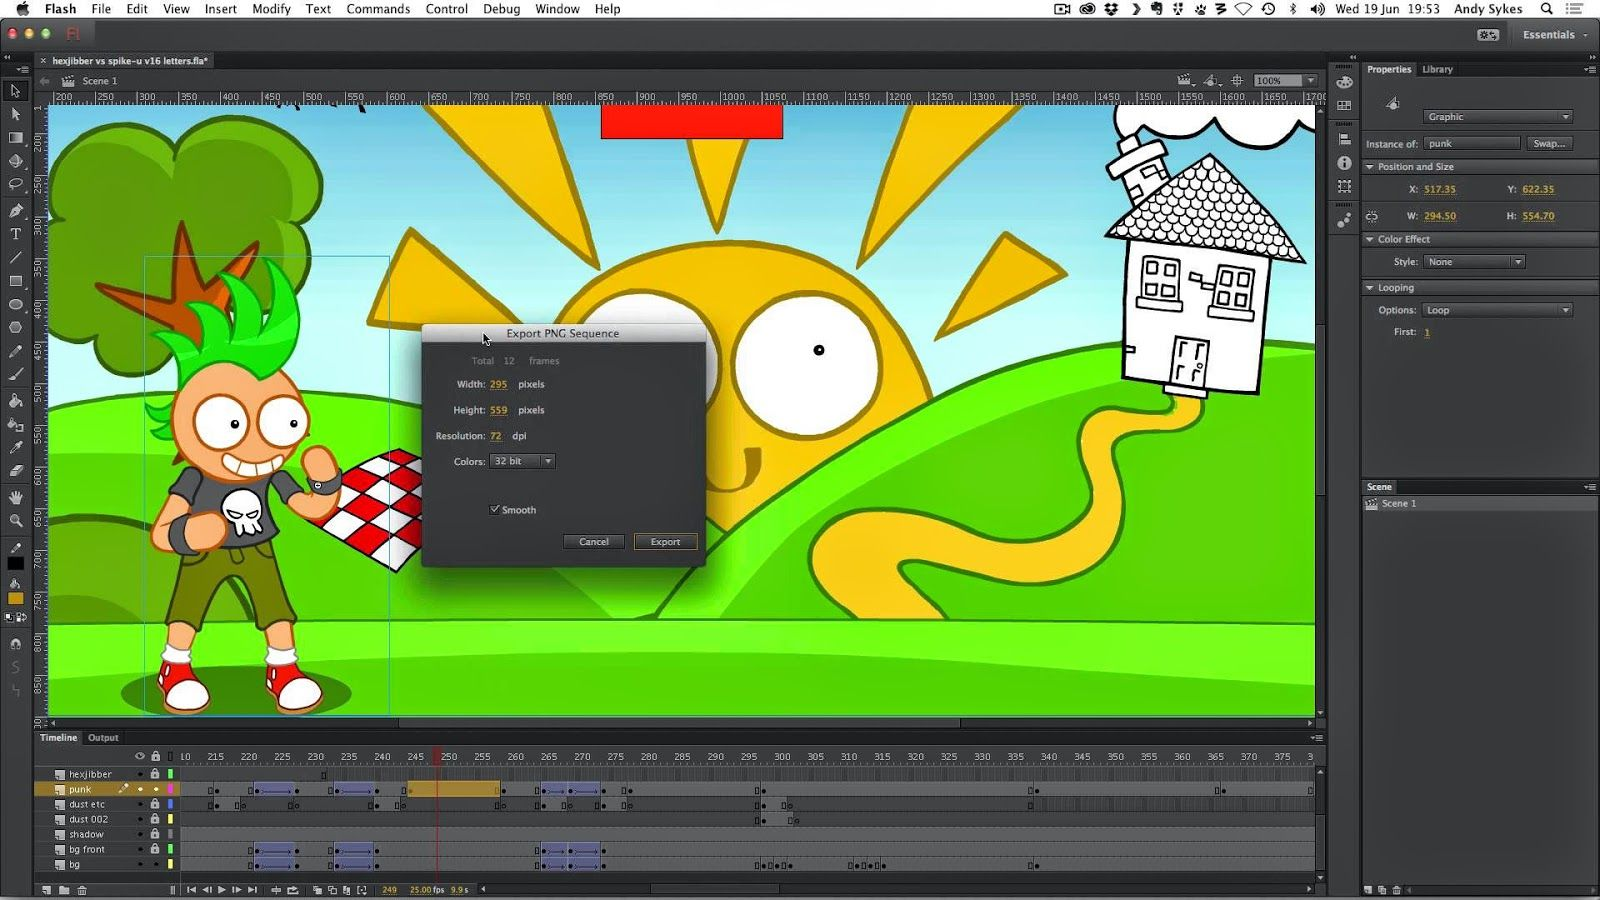 Adobe Flash Animation Free Download wwwhooperswarcom Exaple